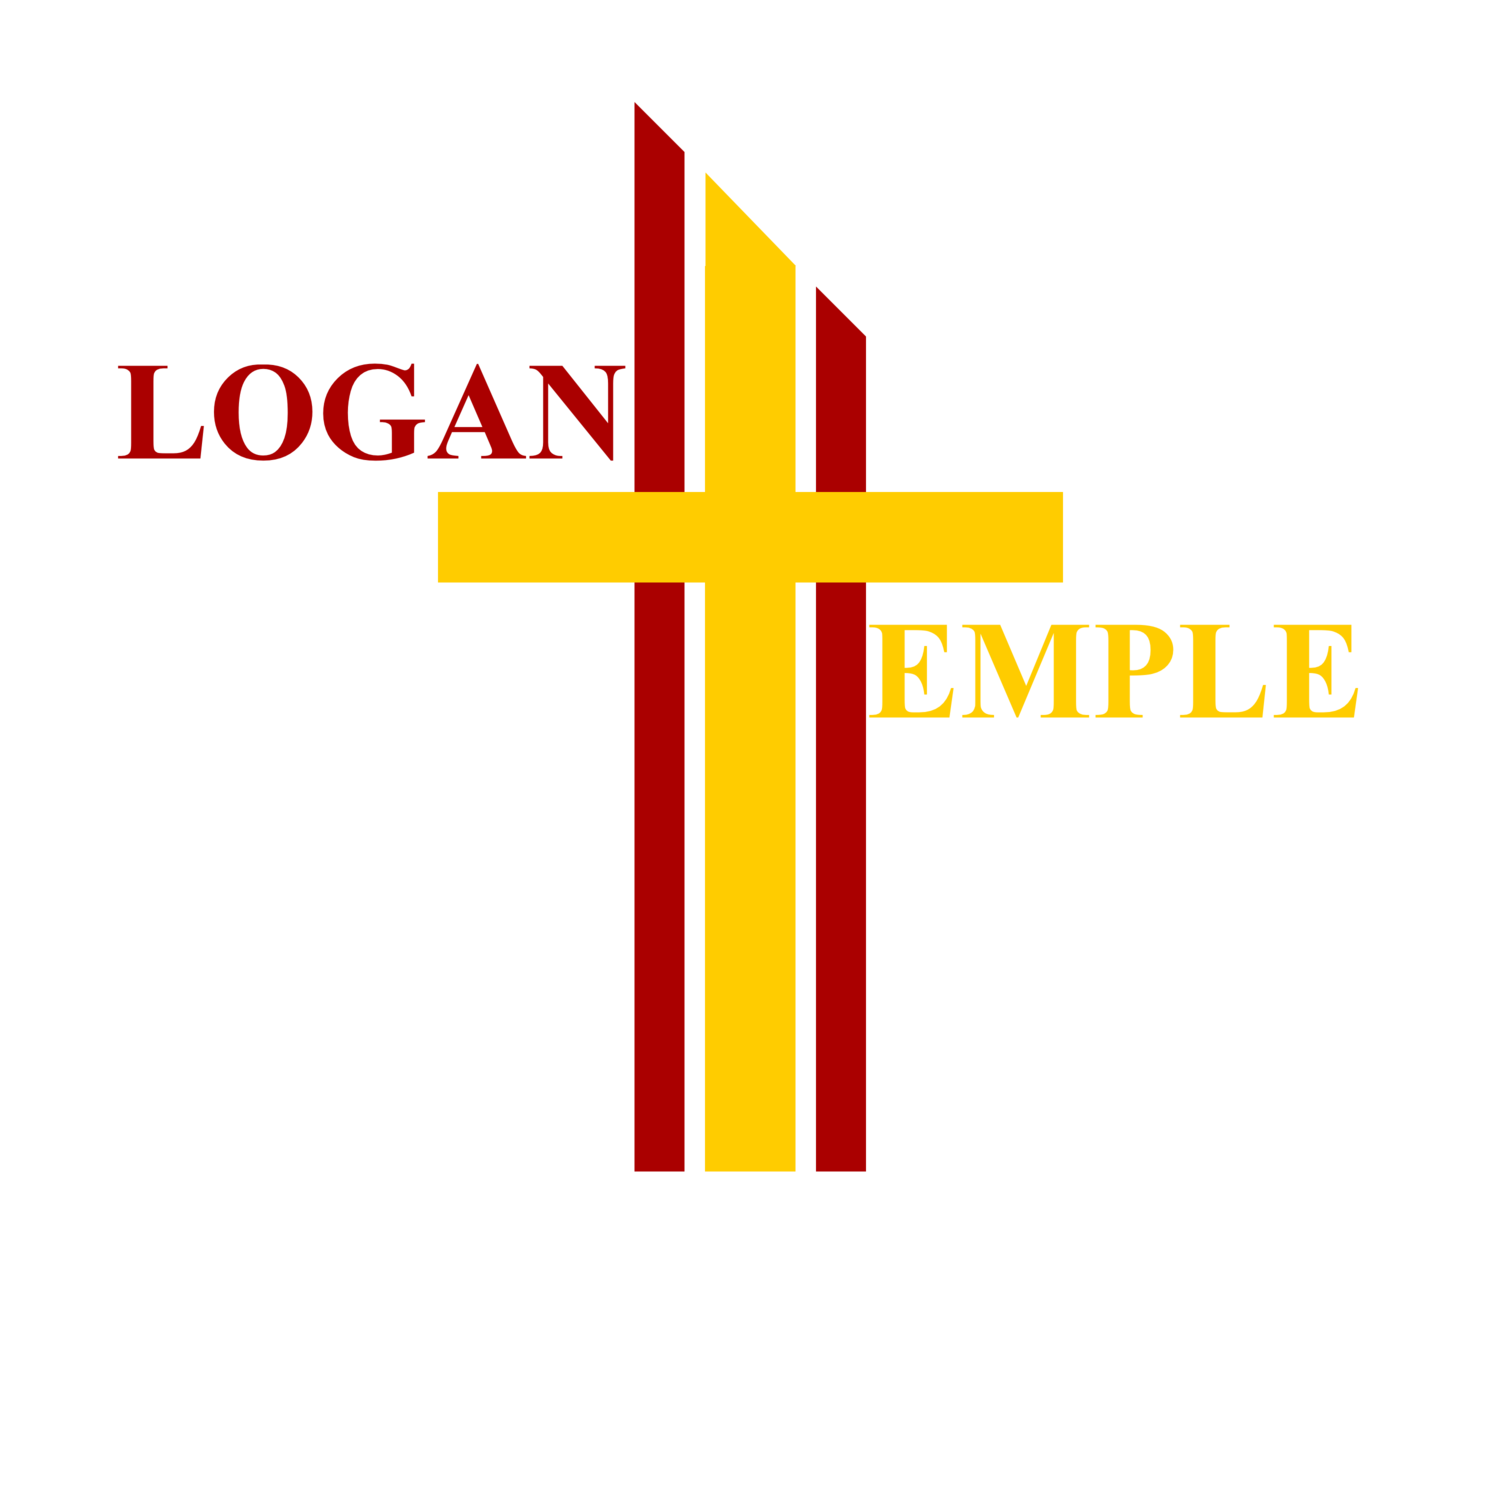 Logan Temple A.M.E. Zion Church